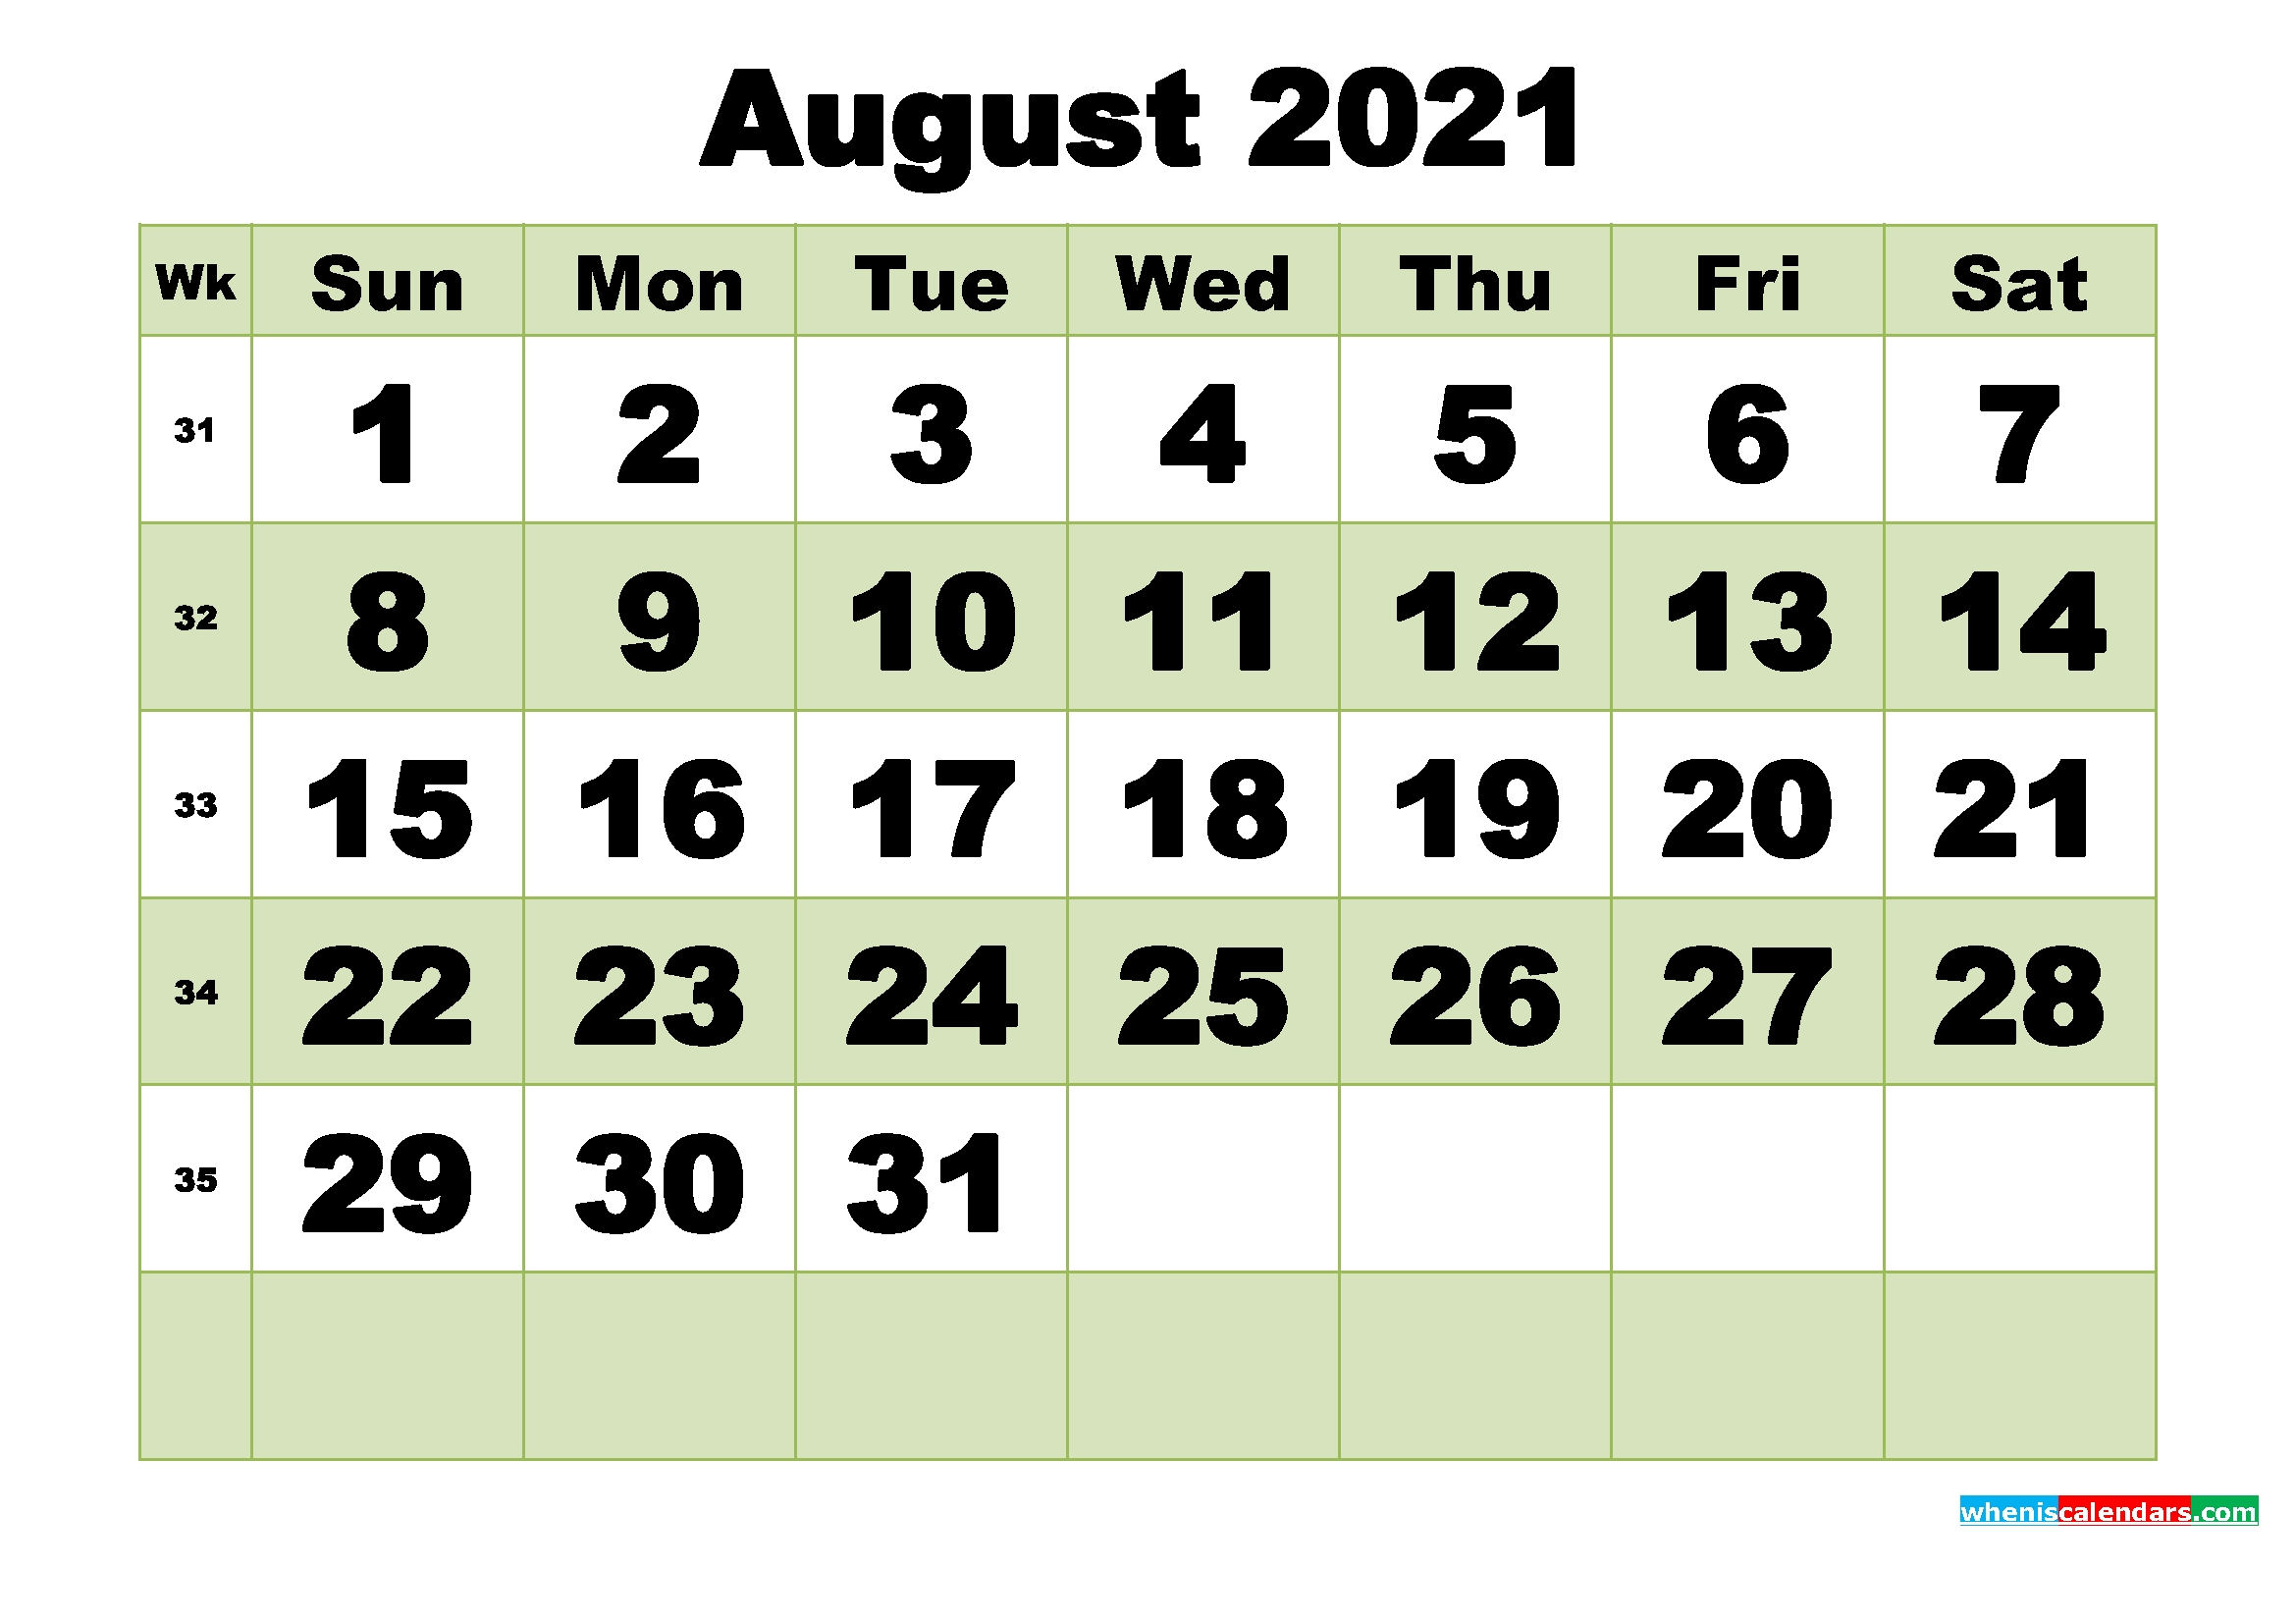 August 2021 Printable Calendar Template | Free Printable 2020 Monthly Calendar With Holidays Printable Calendar August 2020 To May 2021